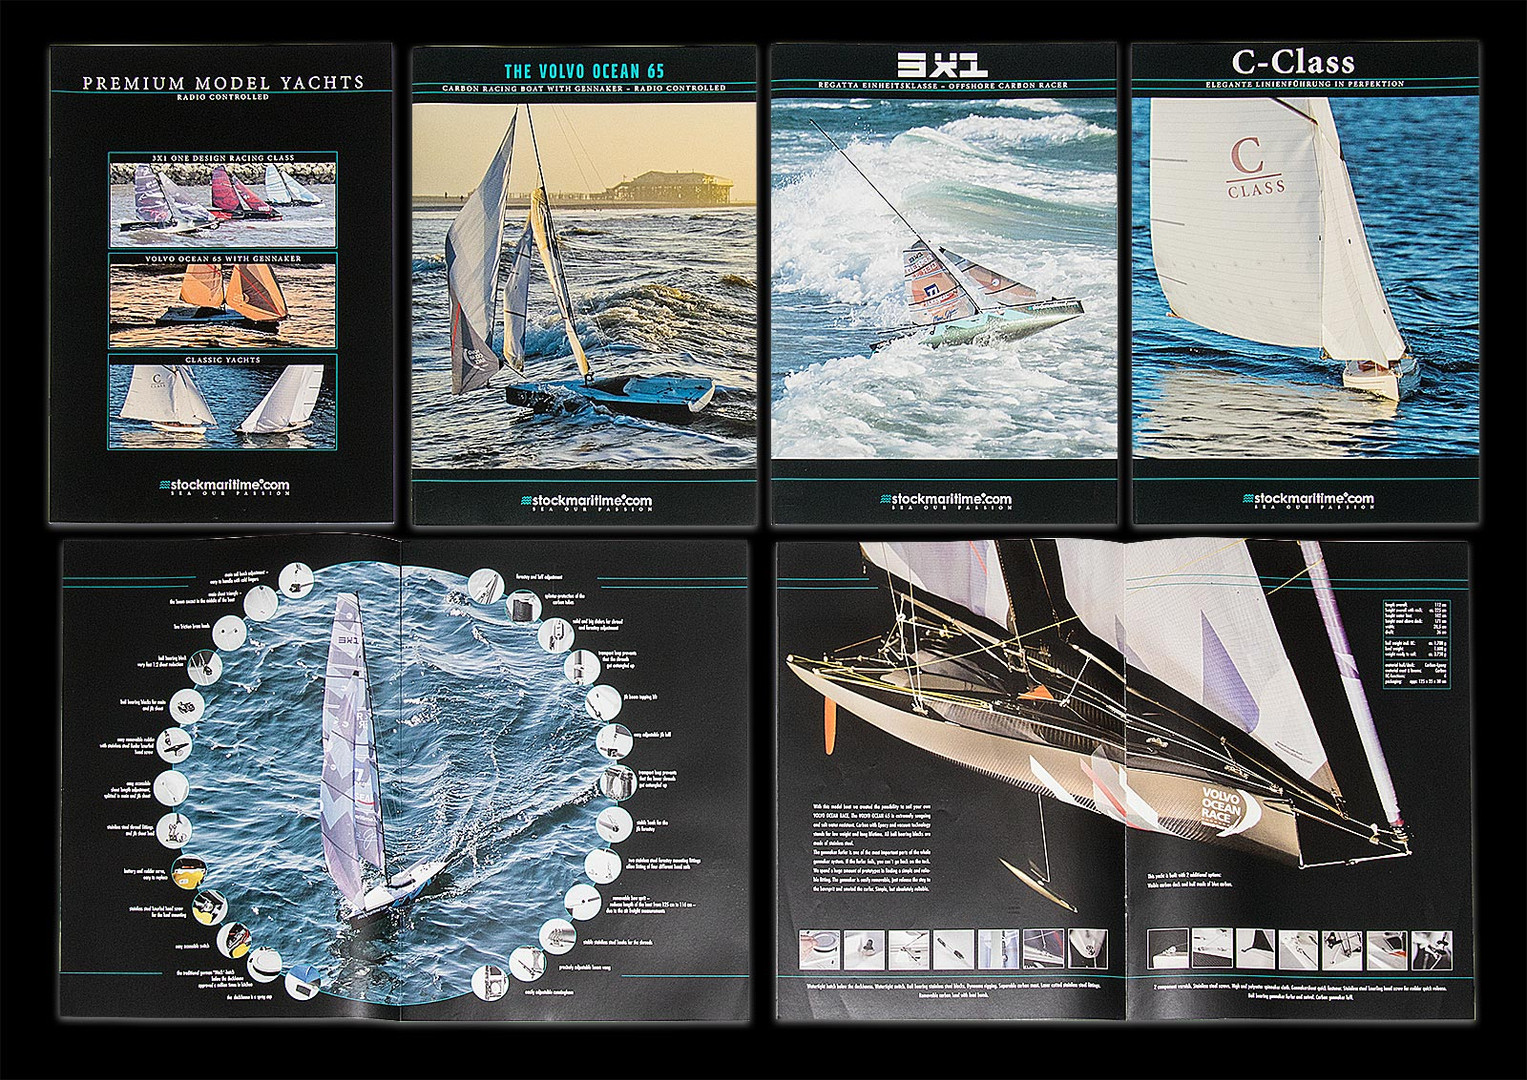 Market Leader in model yachts